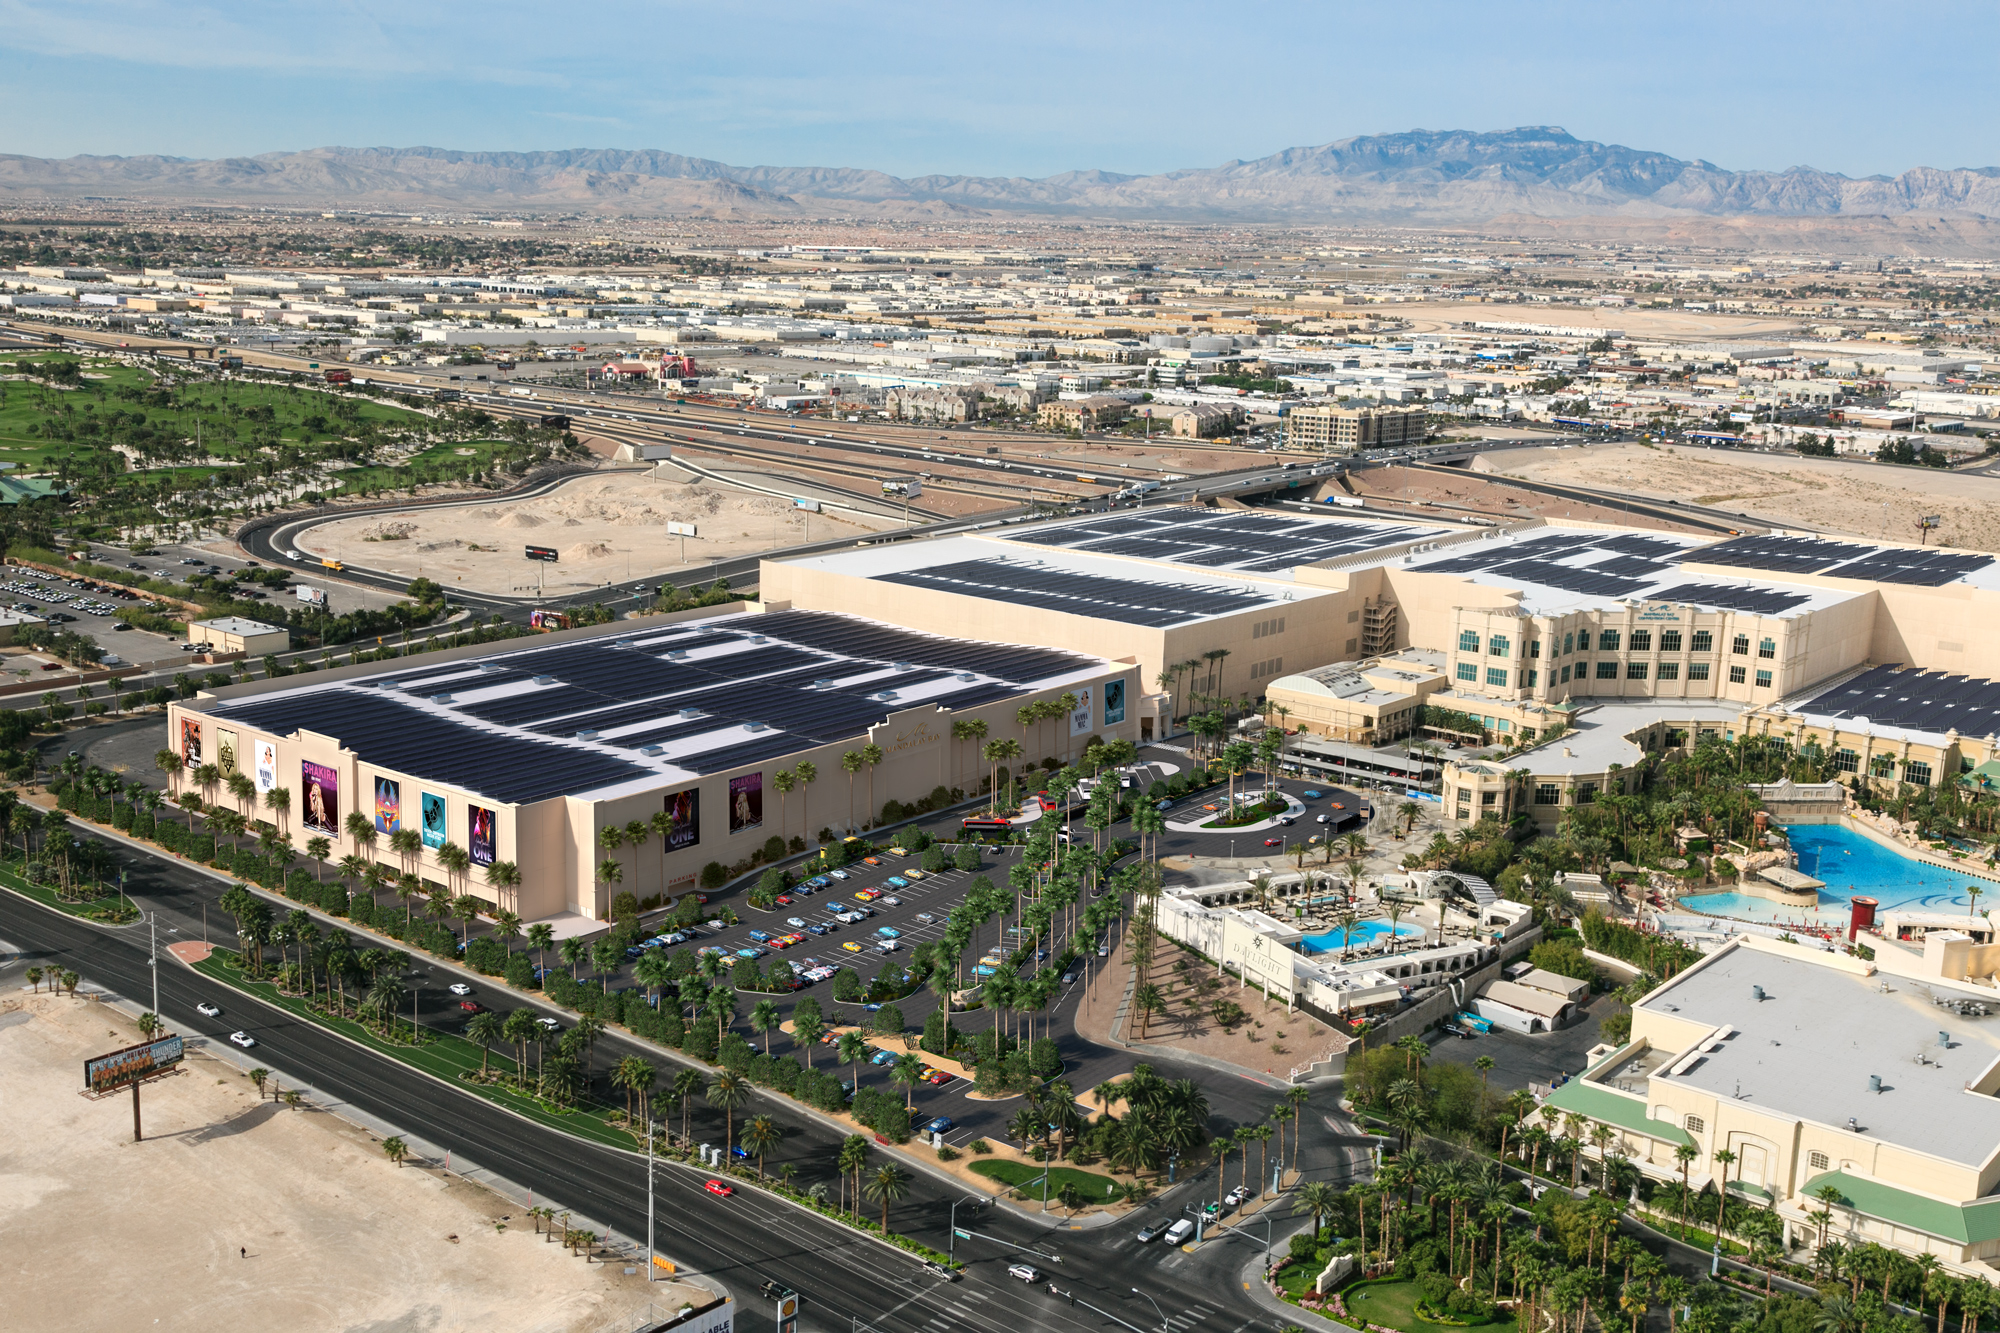 MandalayBayConventionCenterExpansion-Rendering-Aerial View